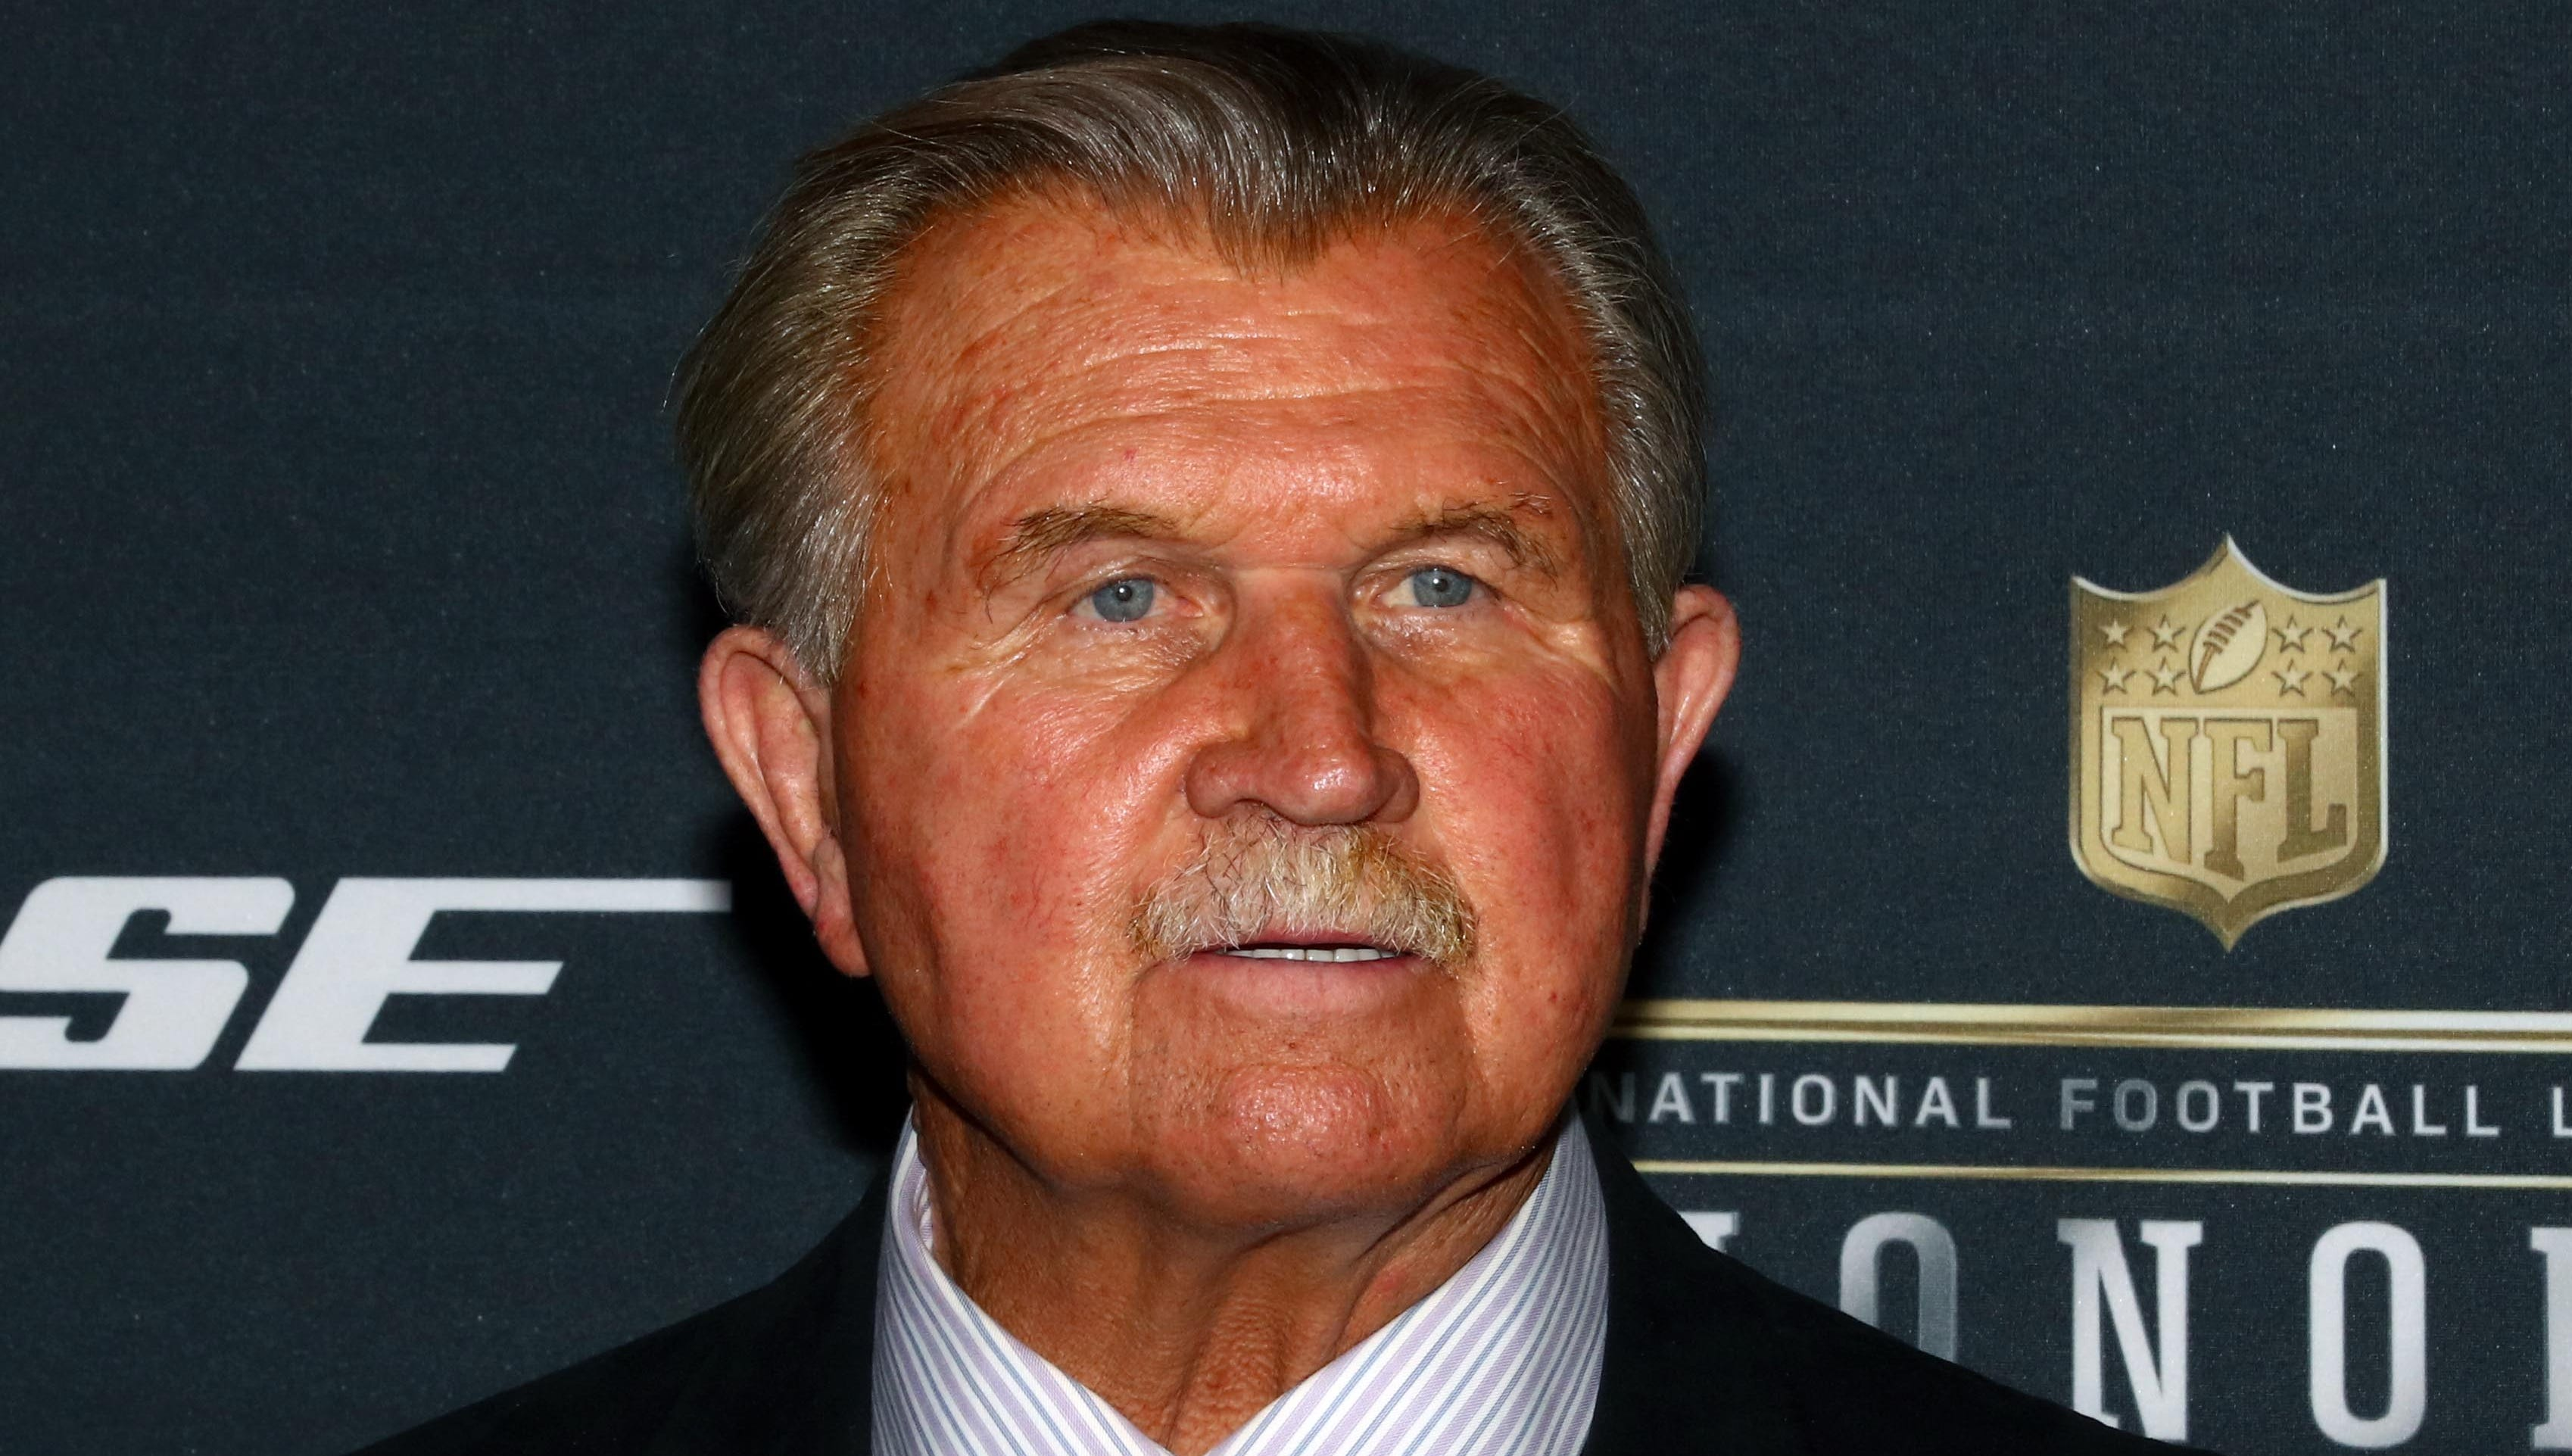 Mike Ditka is one of a select few to win a Super Bowl as both a player and a coach.